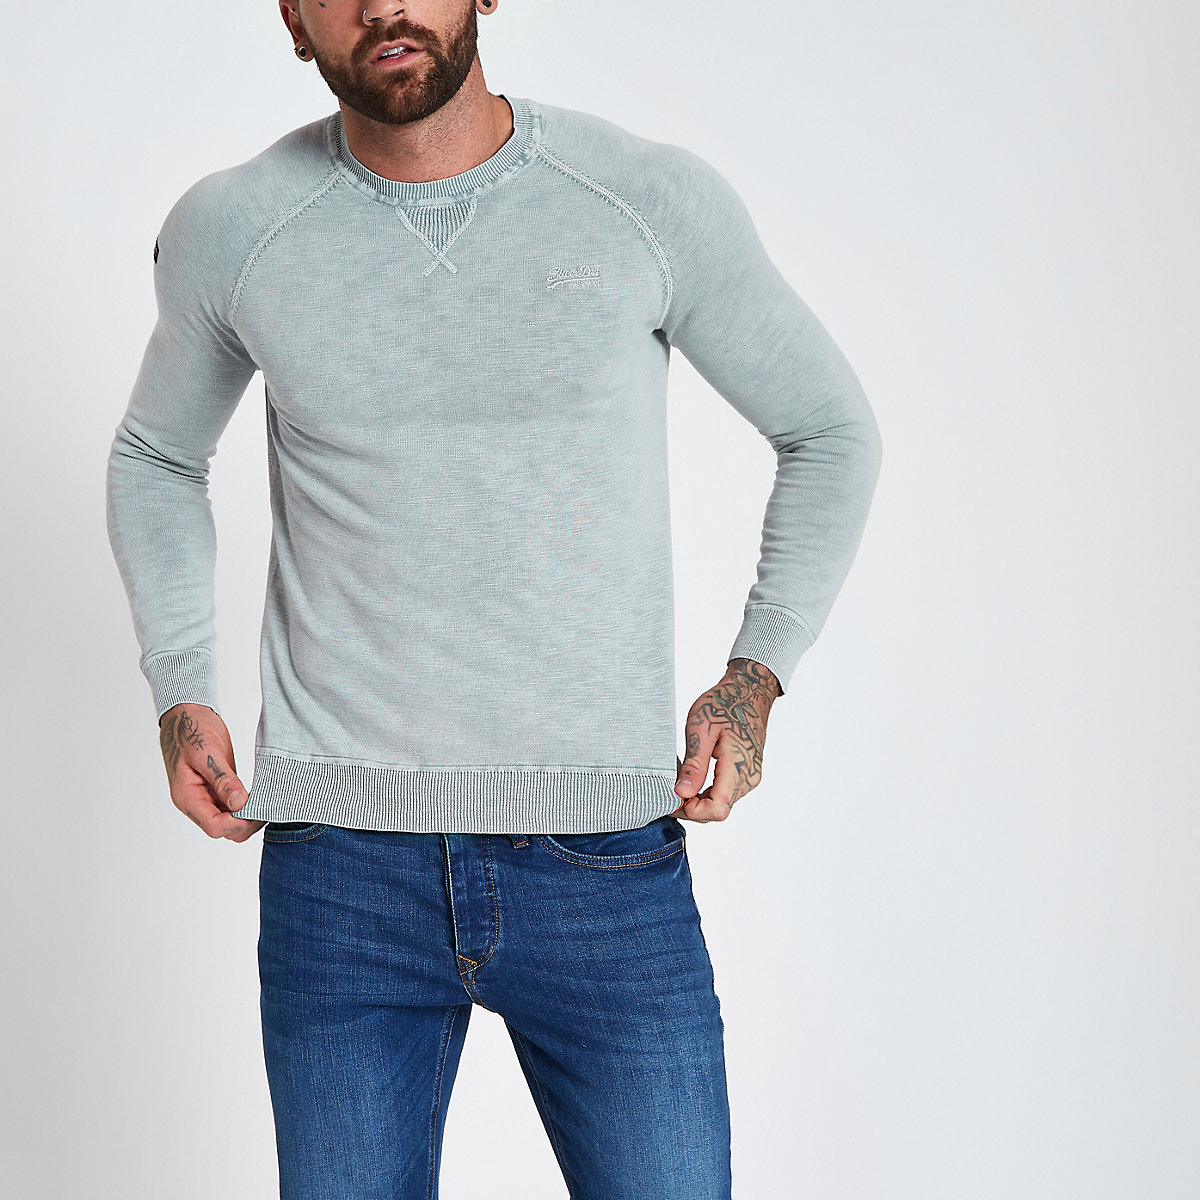 Superdry grey sweater